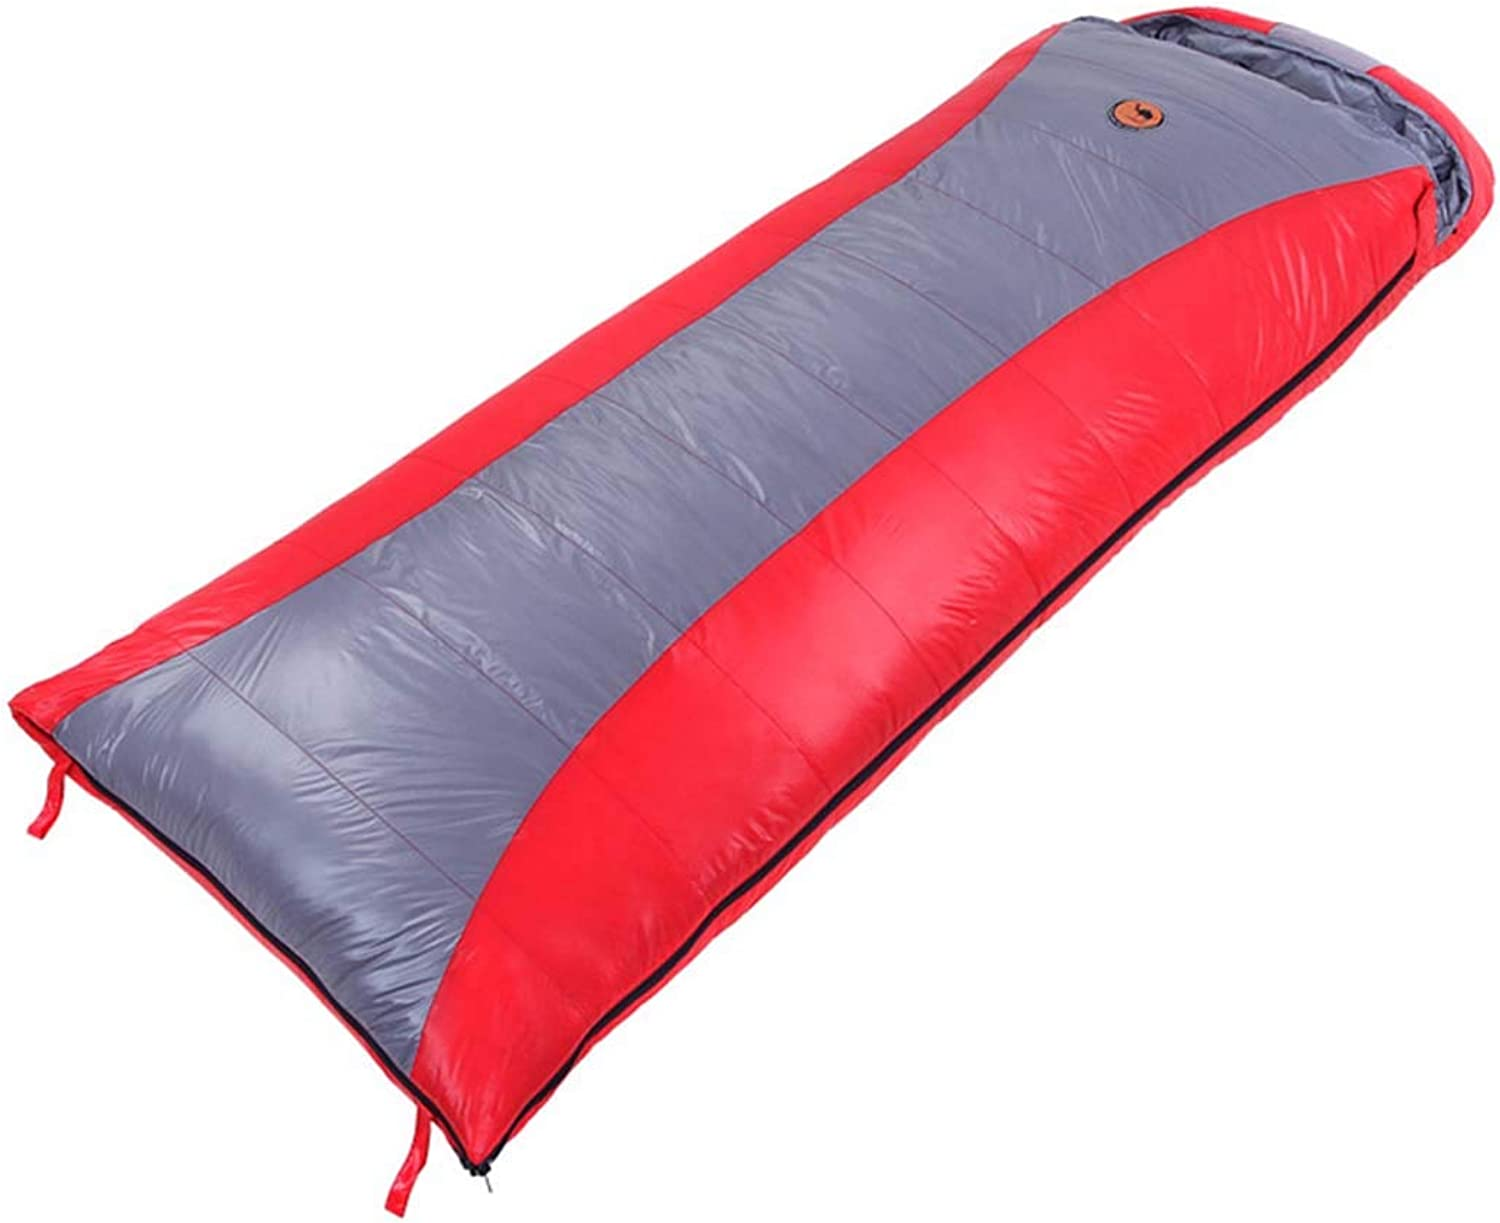 Sleeping Bag,Sleeping Bag Lightweight Warm Envelope Sleeping Bags with Compression Sack for Adults 3 Seasons Outdoor Travel Camping